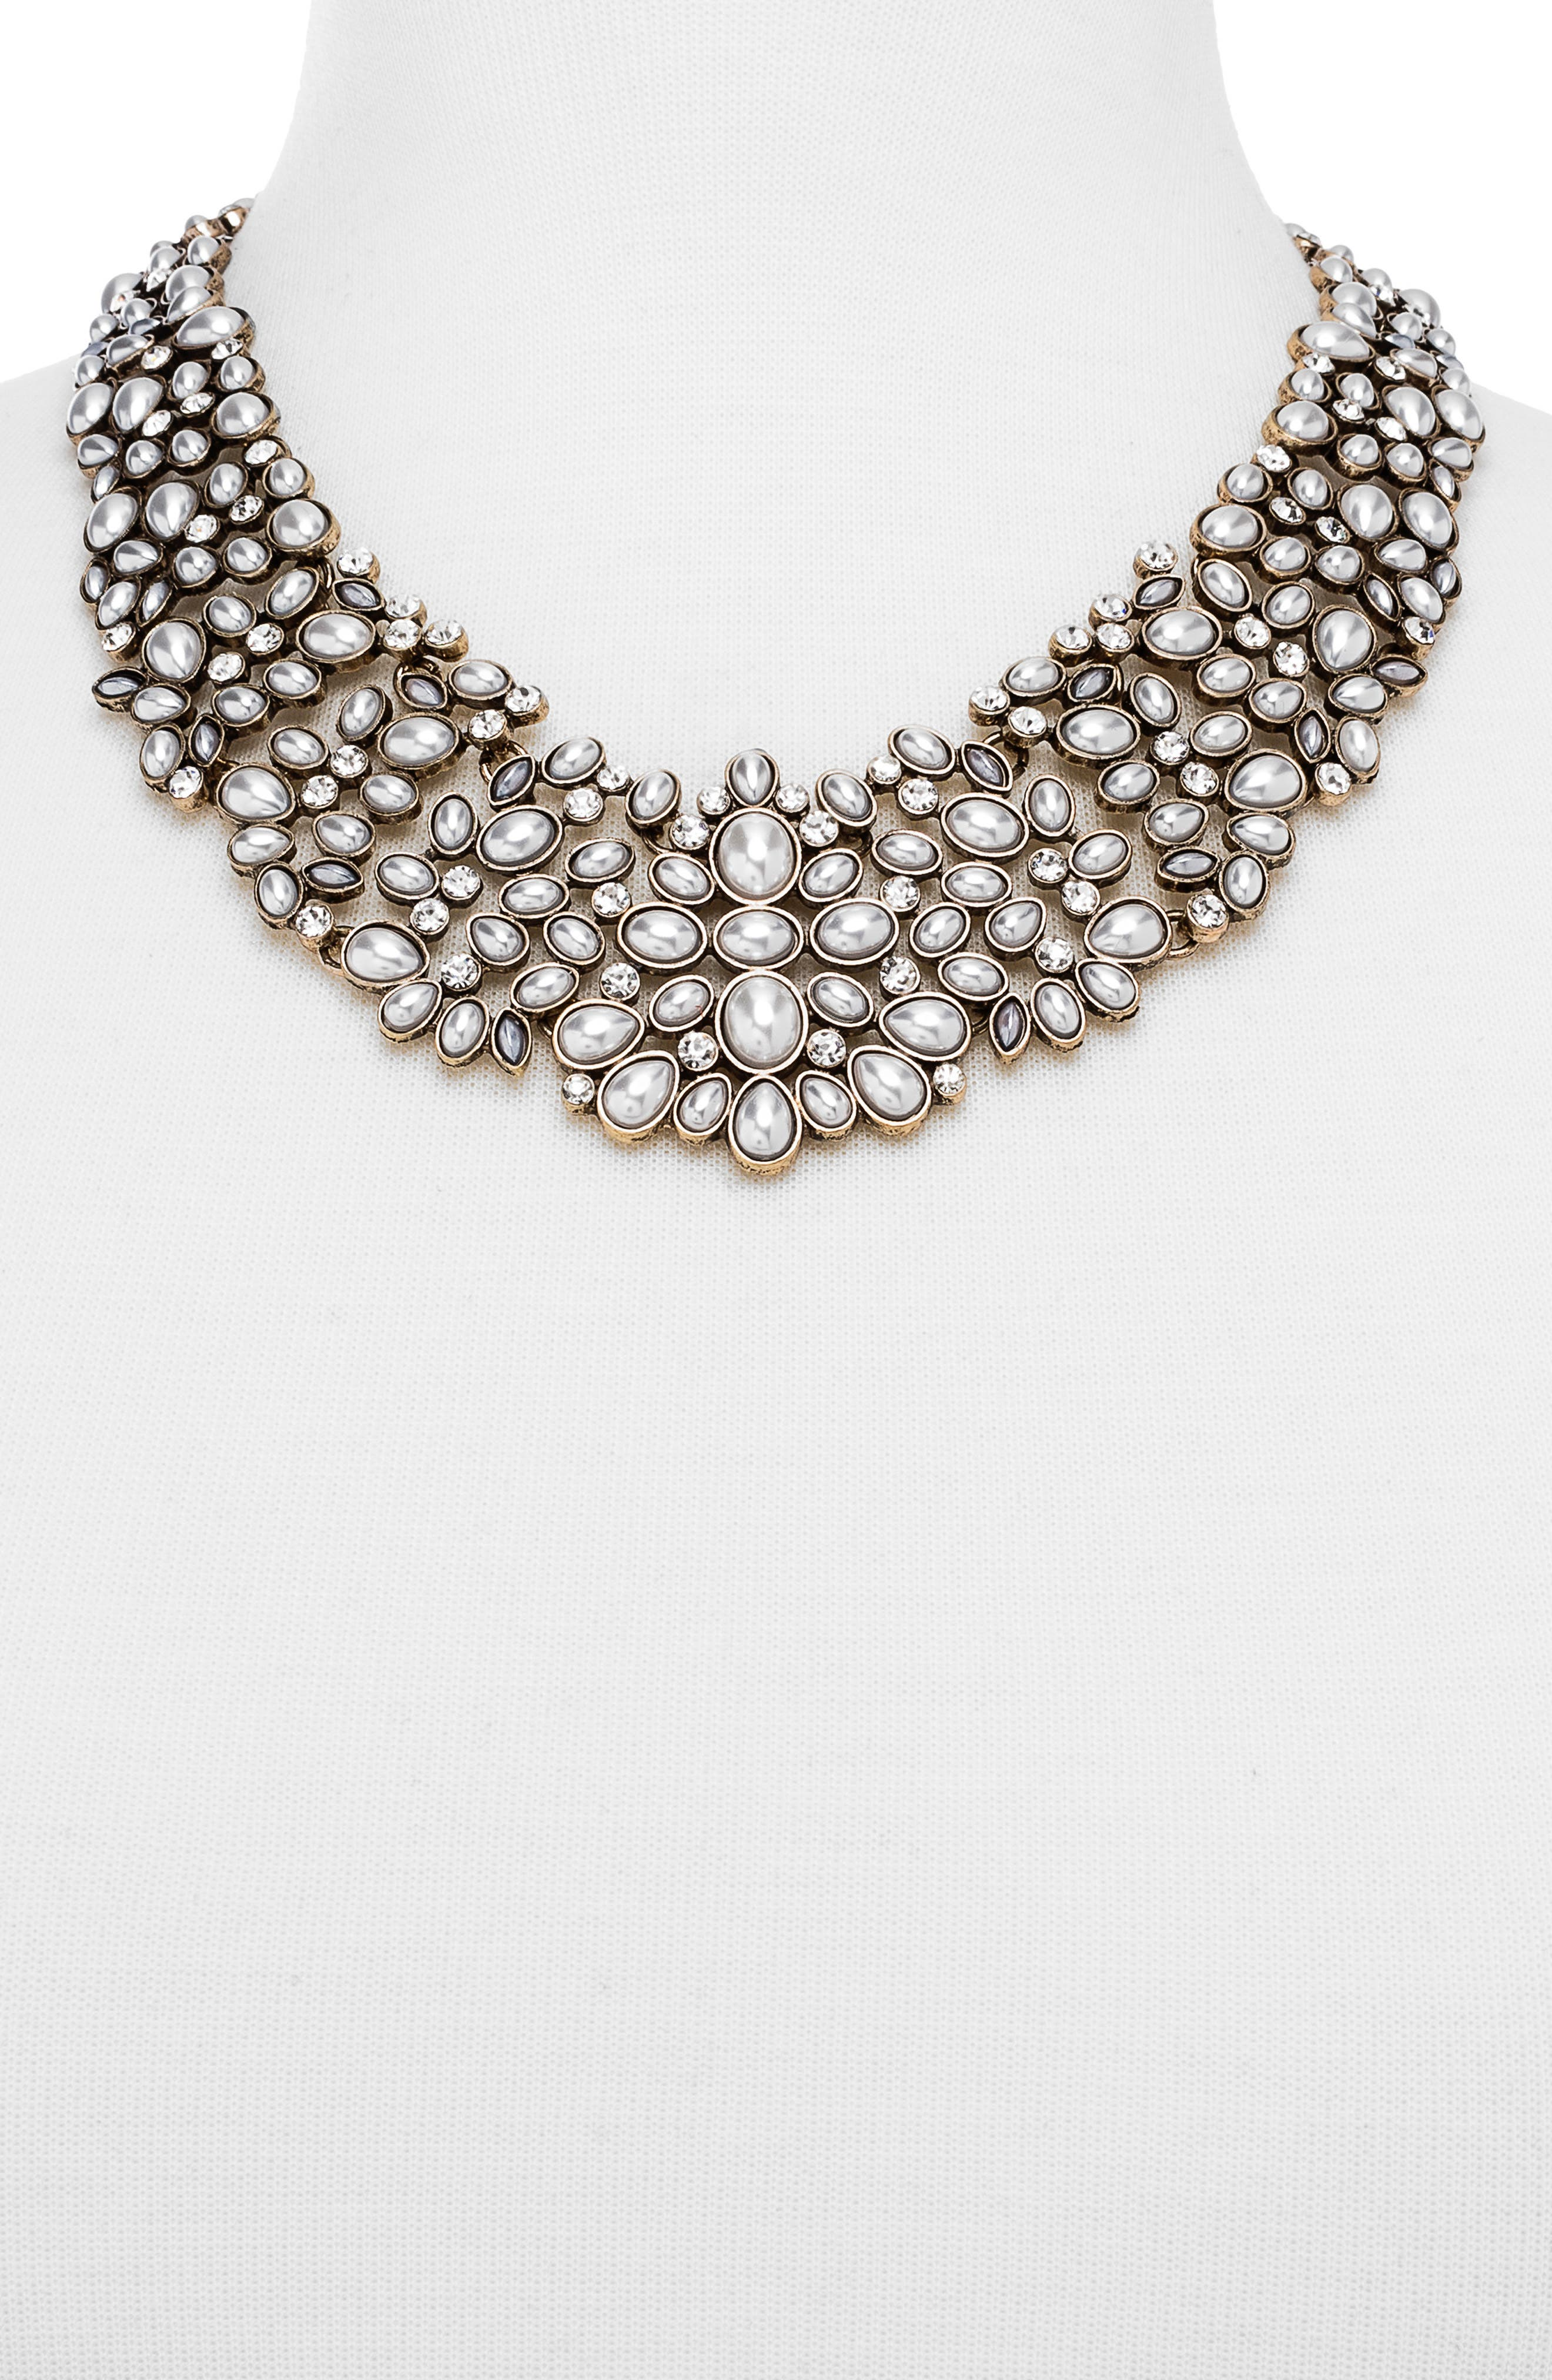 BAUBLEBAR, 'Kew' Crystal Collar Necklace, Alternate thumbnail 2, color, PEARL/ GOLD